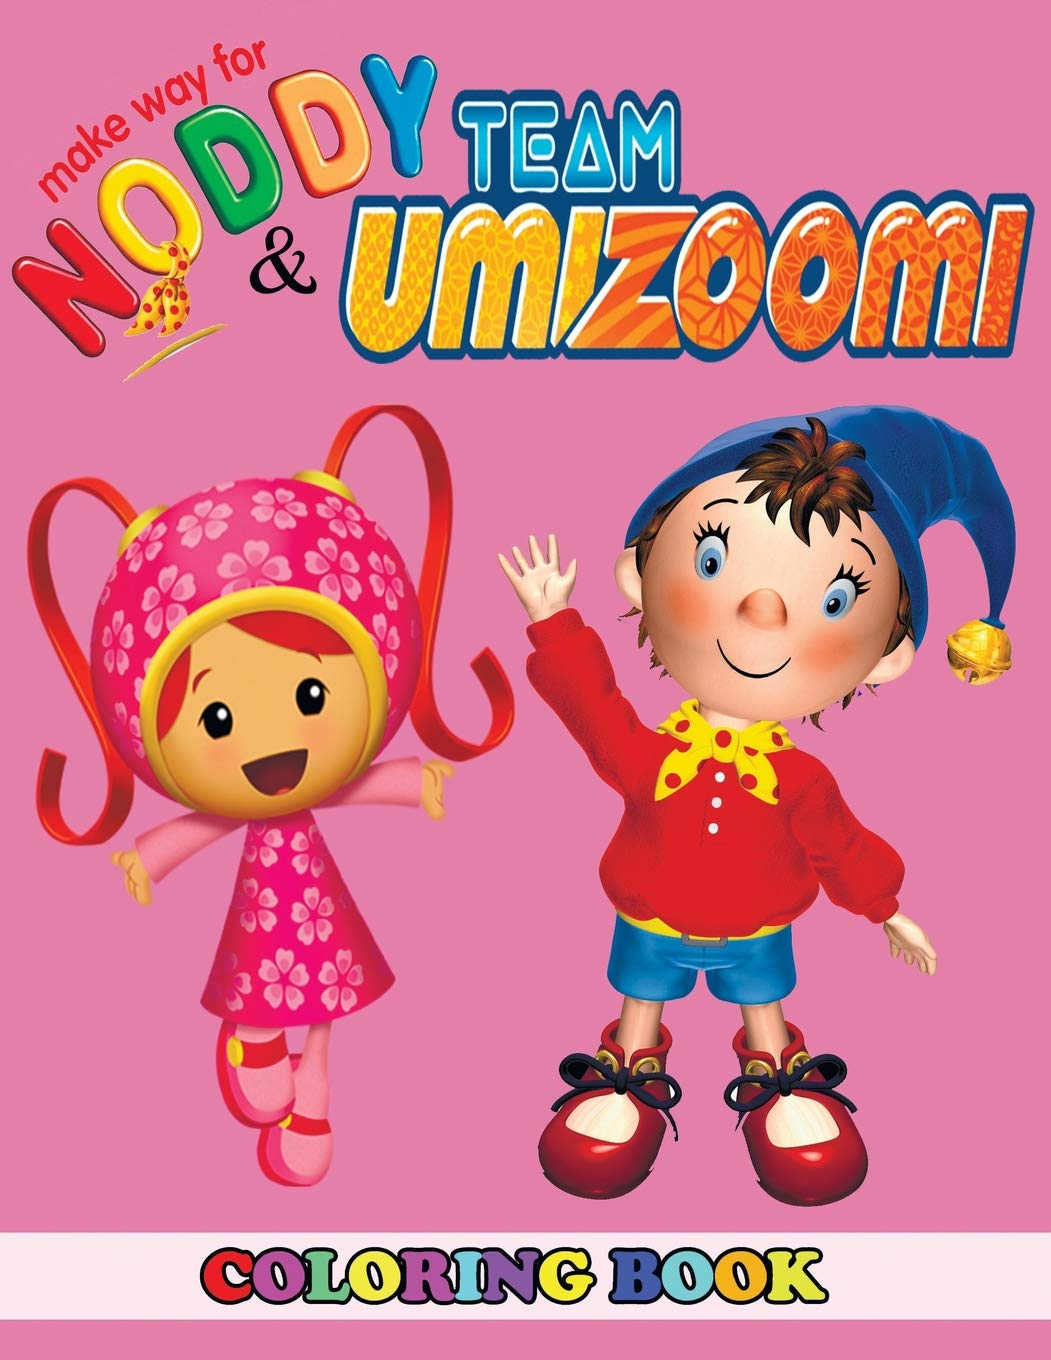 Amazon.com: Make Way for Noddy and Team Umizoomi Coloring ...